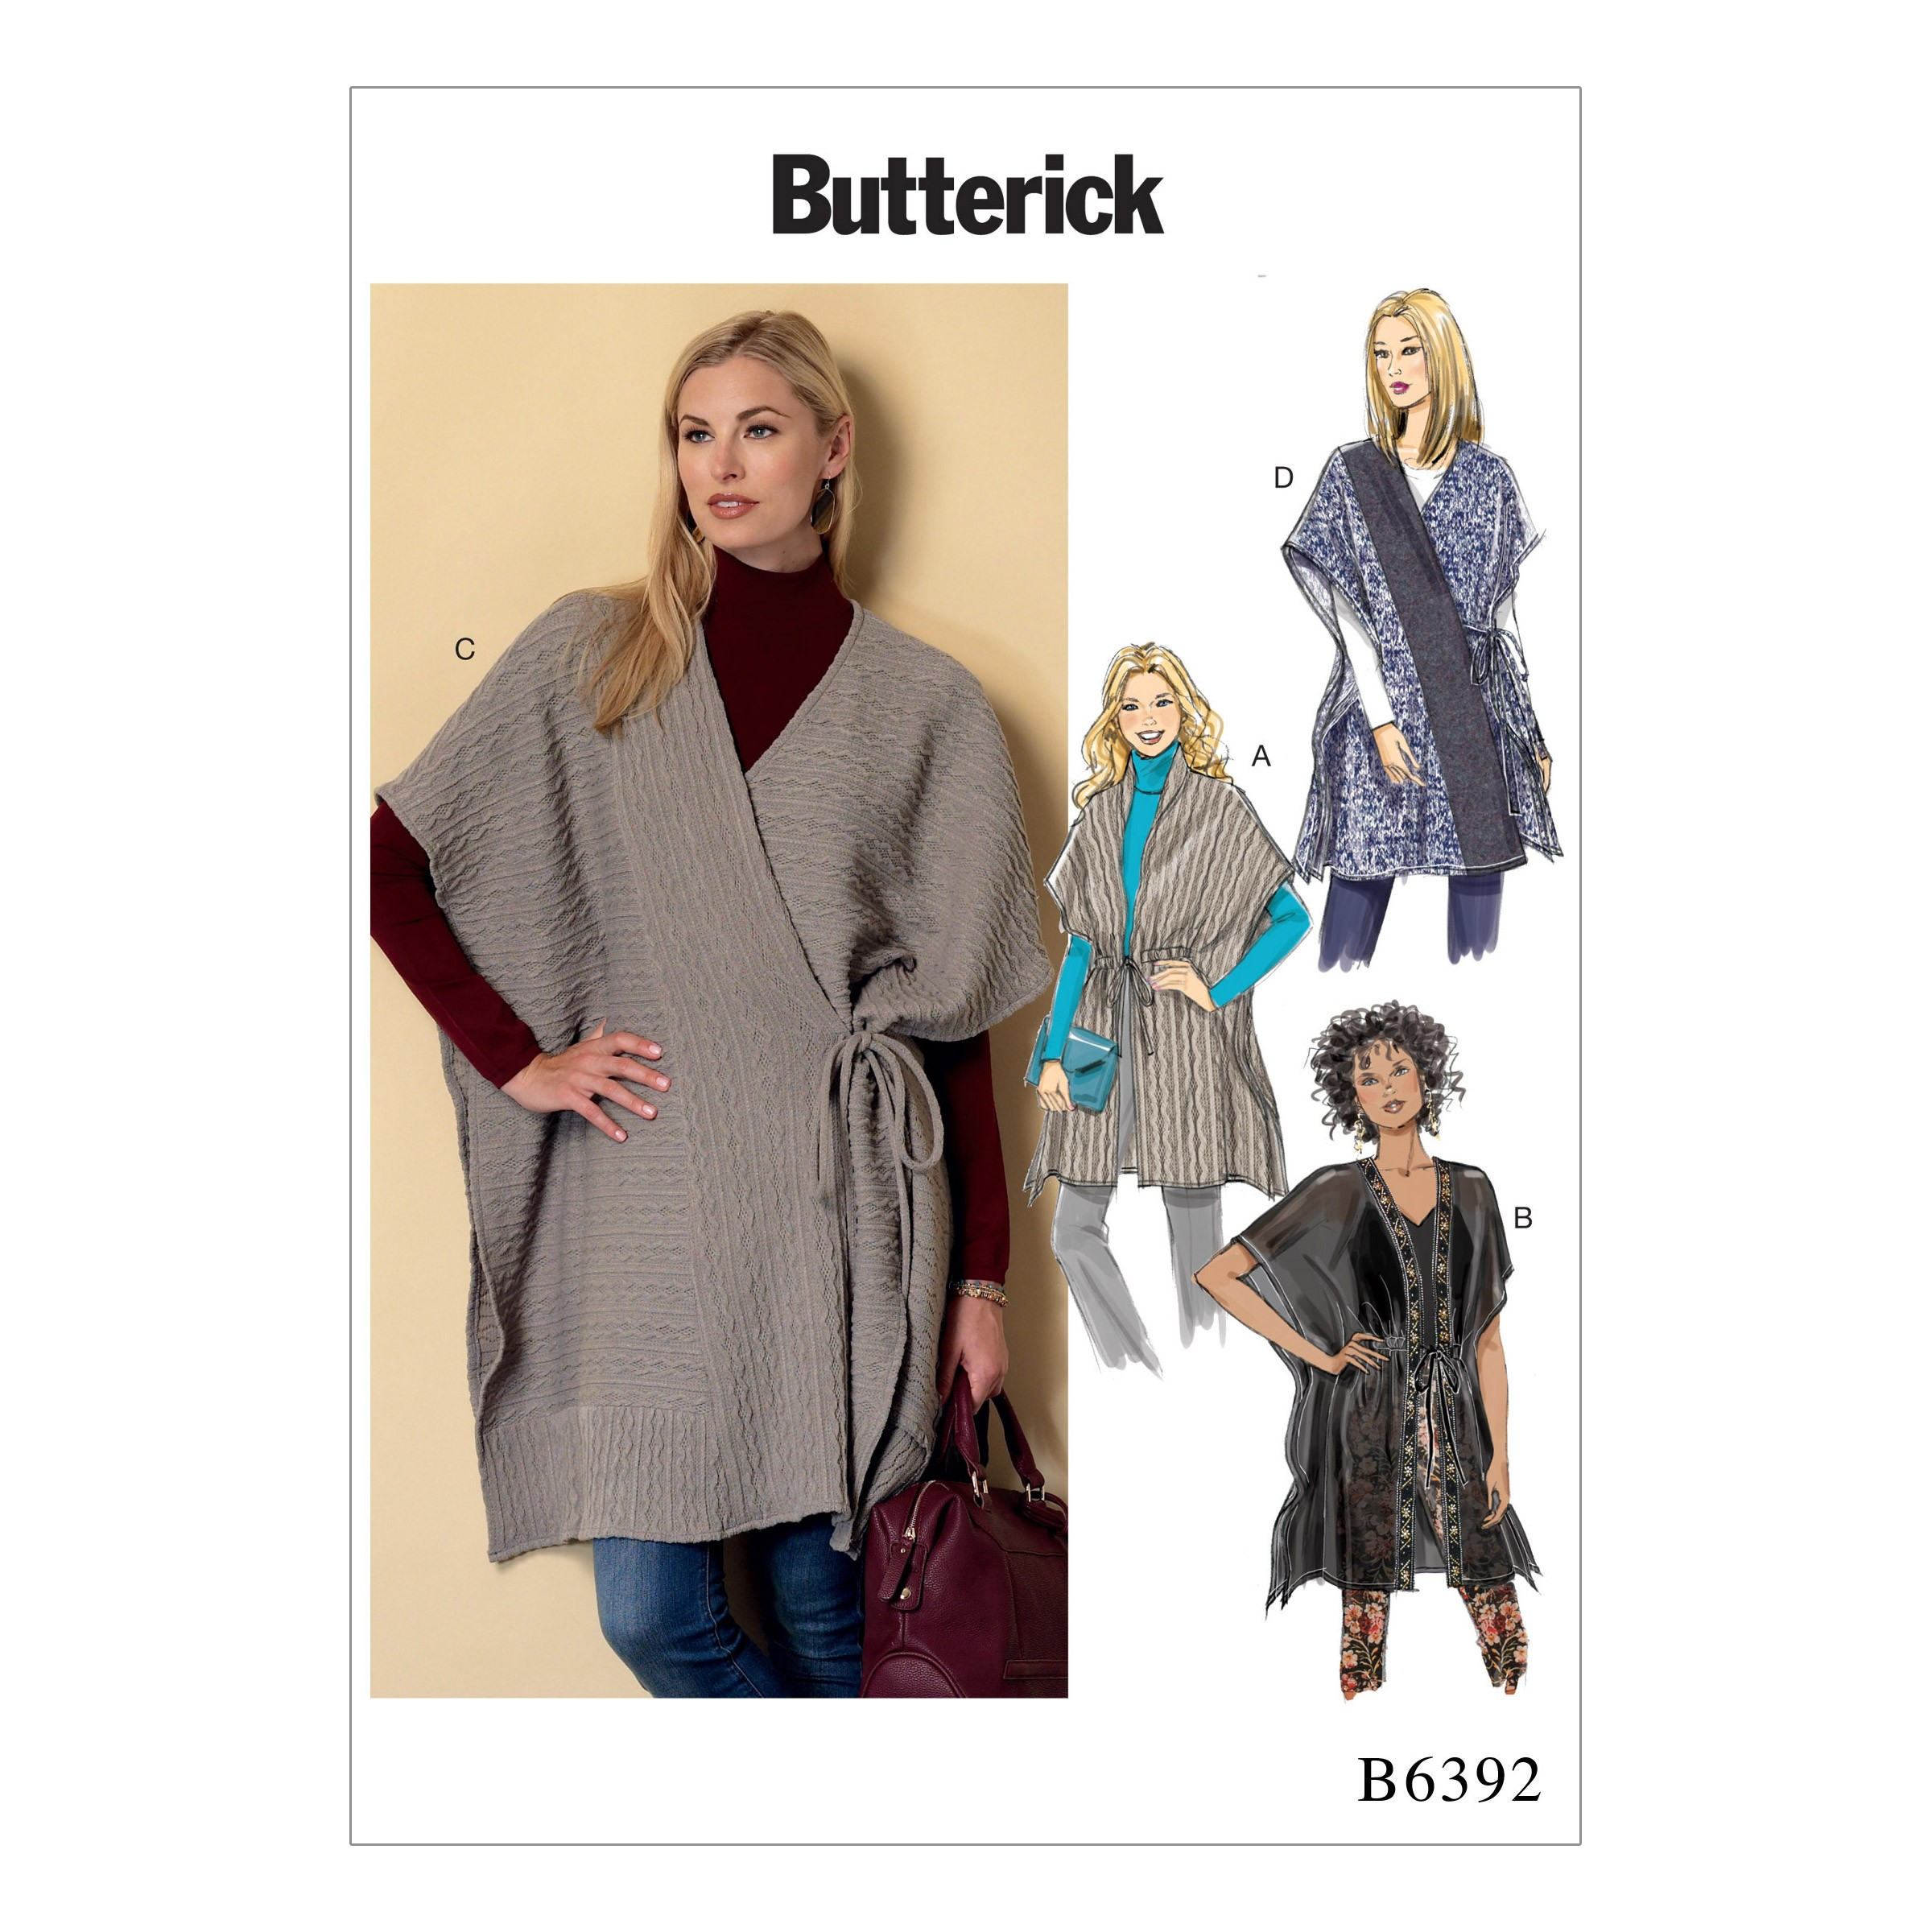 Butterick Sewing Pattern 6392 Misses' Banded or Collared Wraps